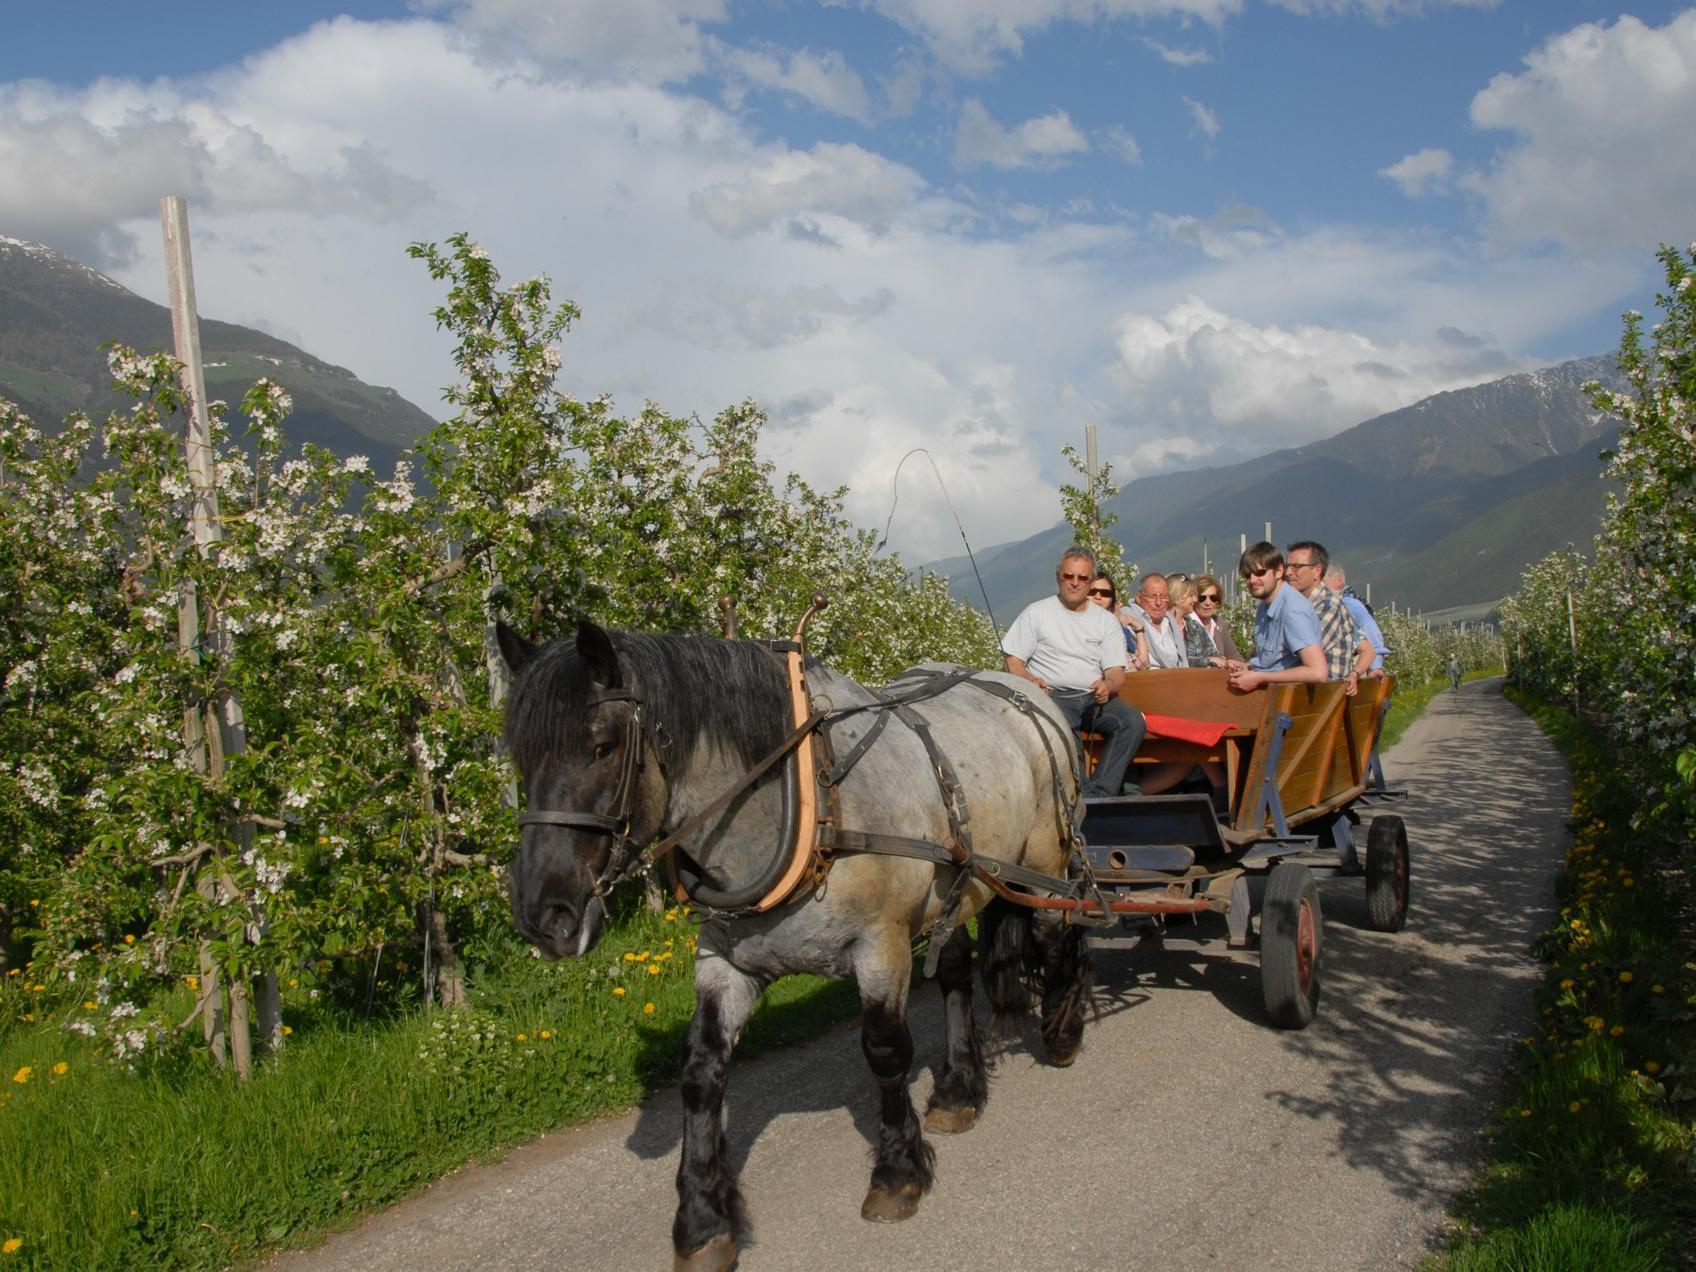 Carriage drive through the apple gardens